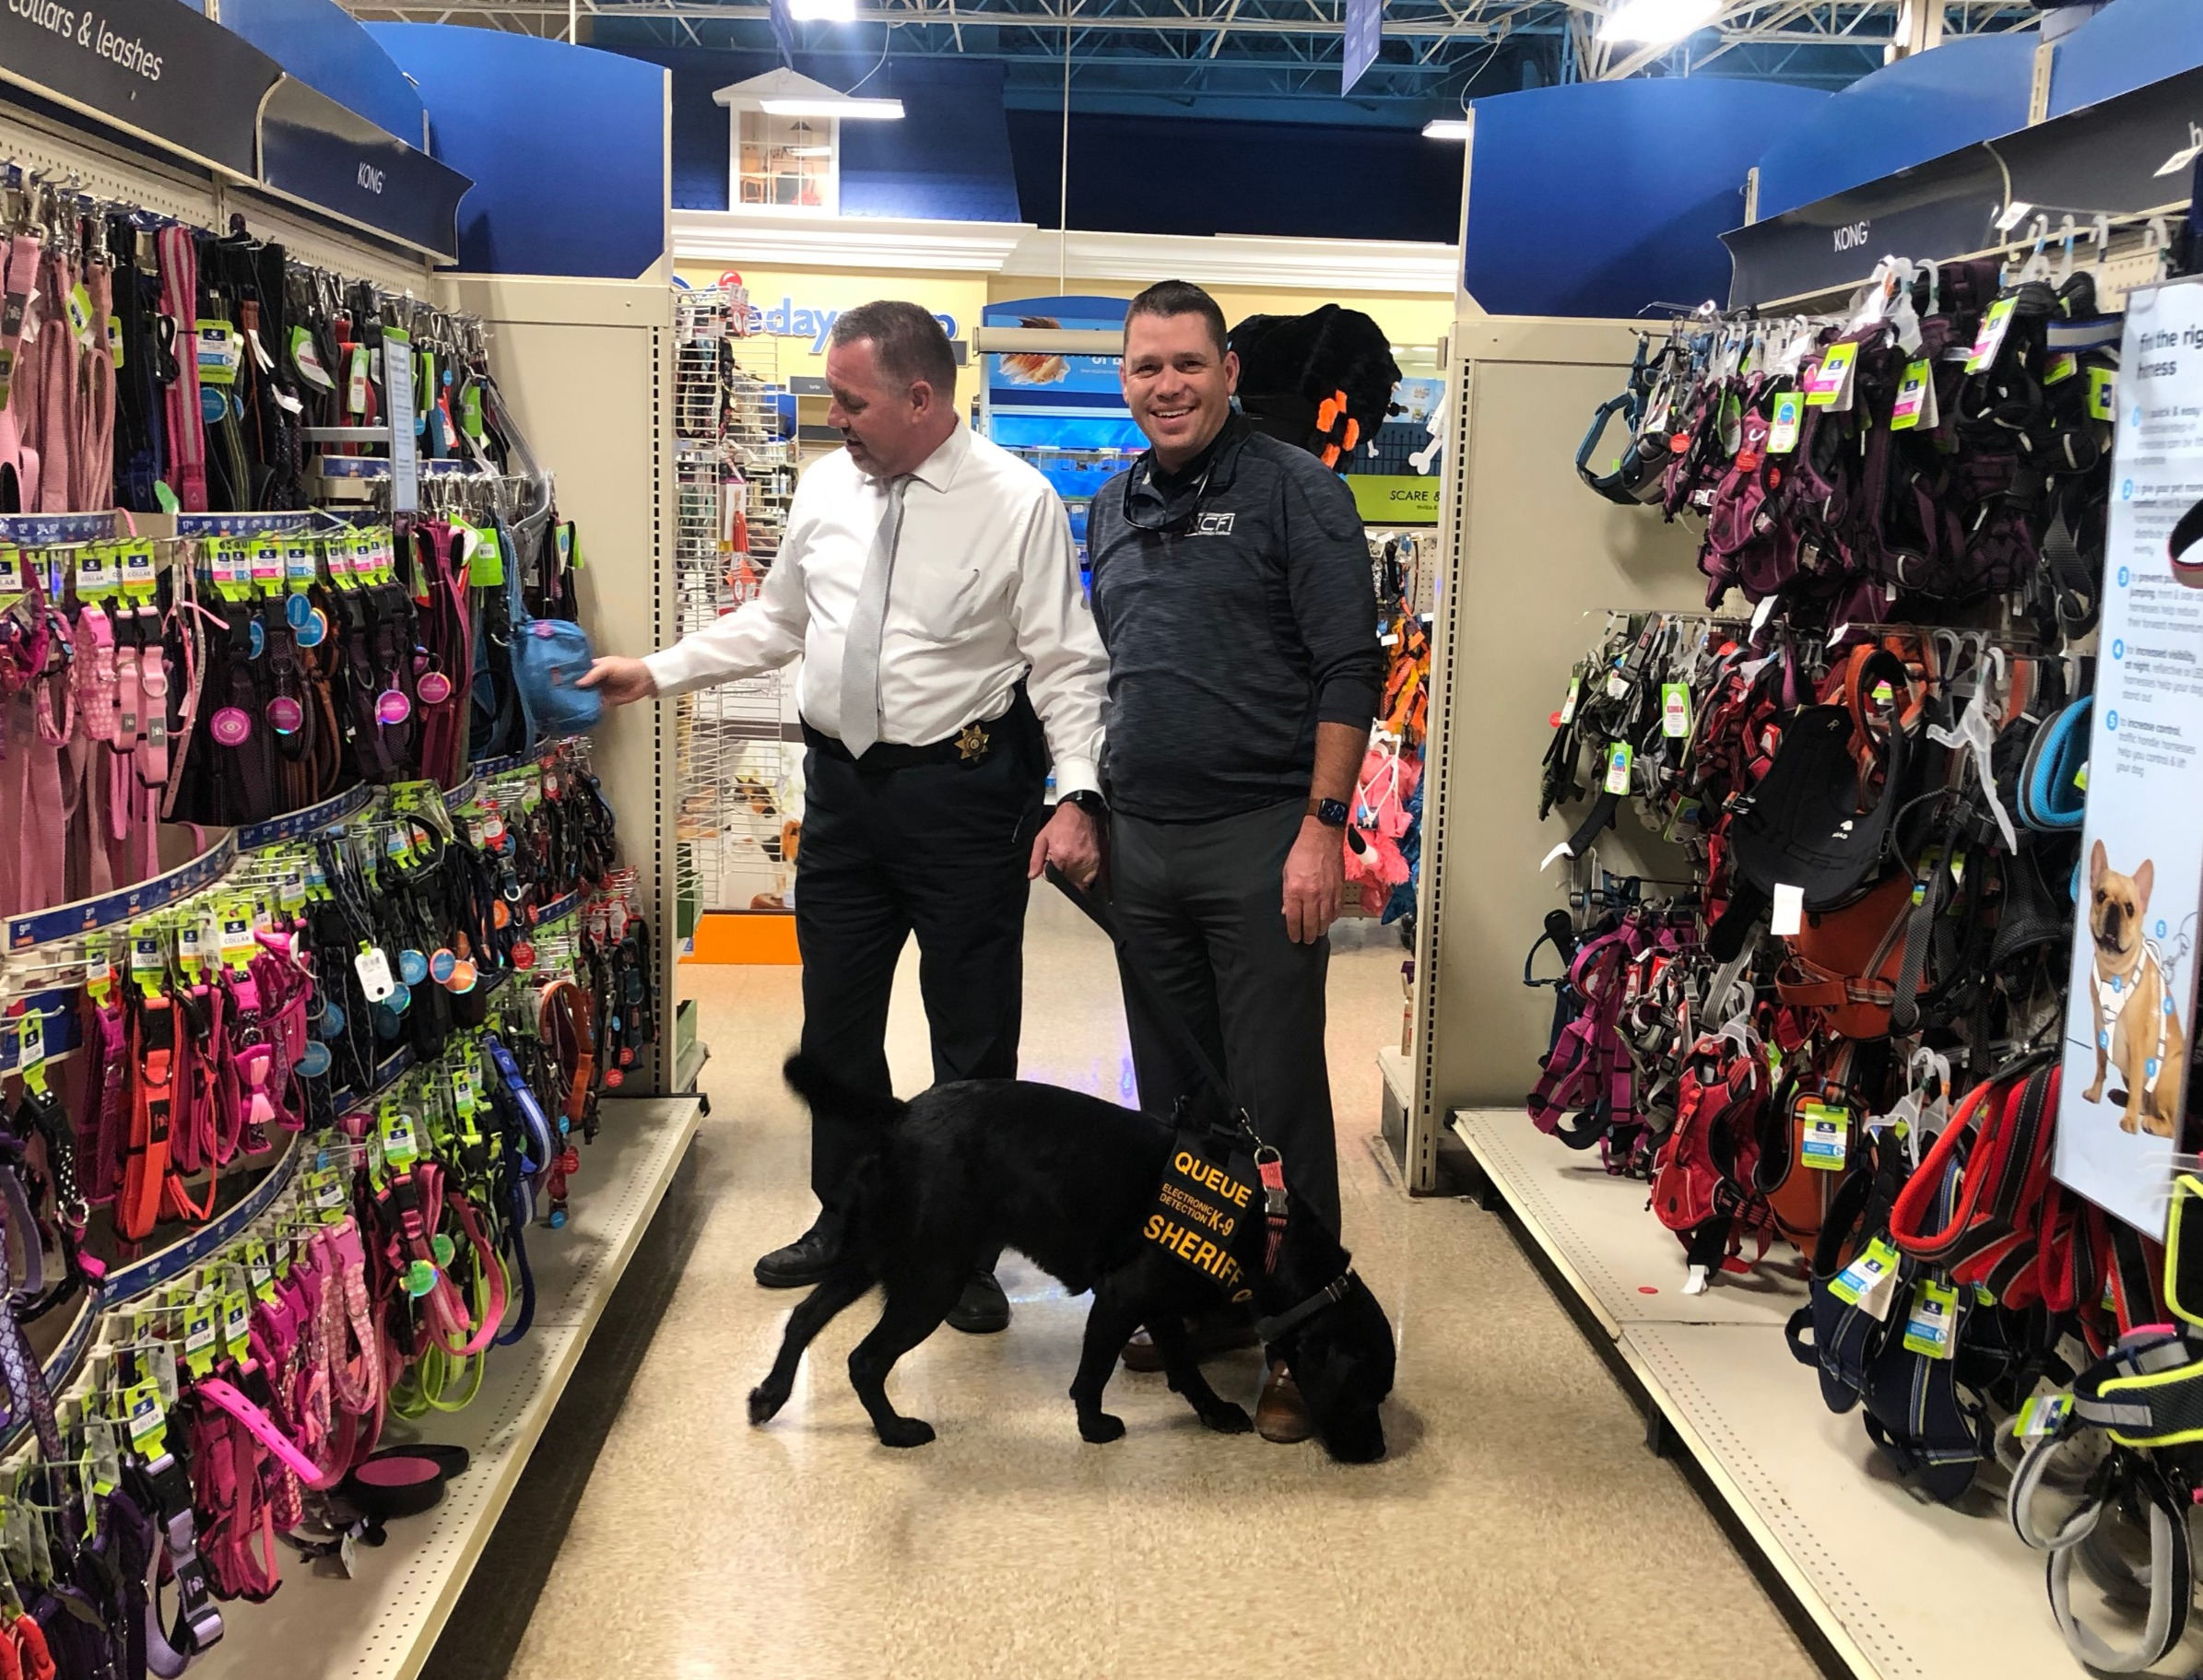 K9 Handlers Shopping